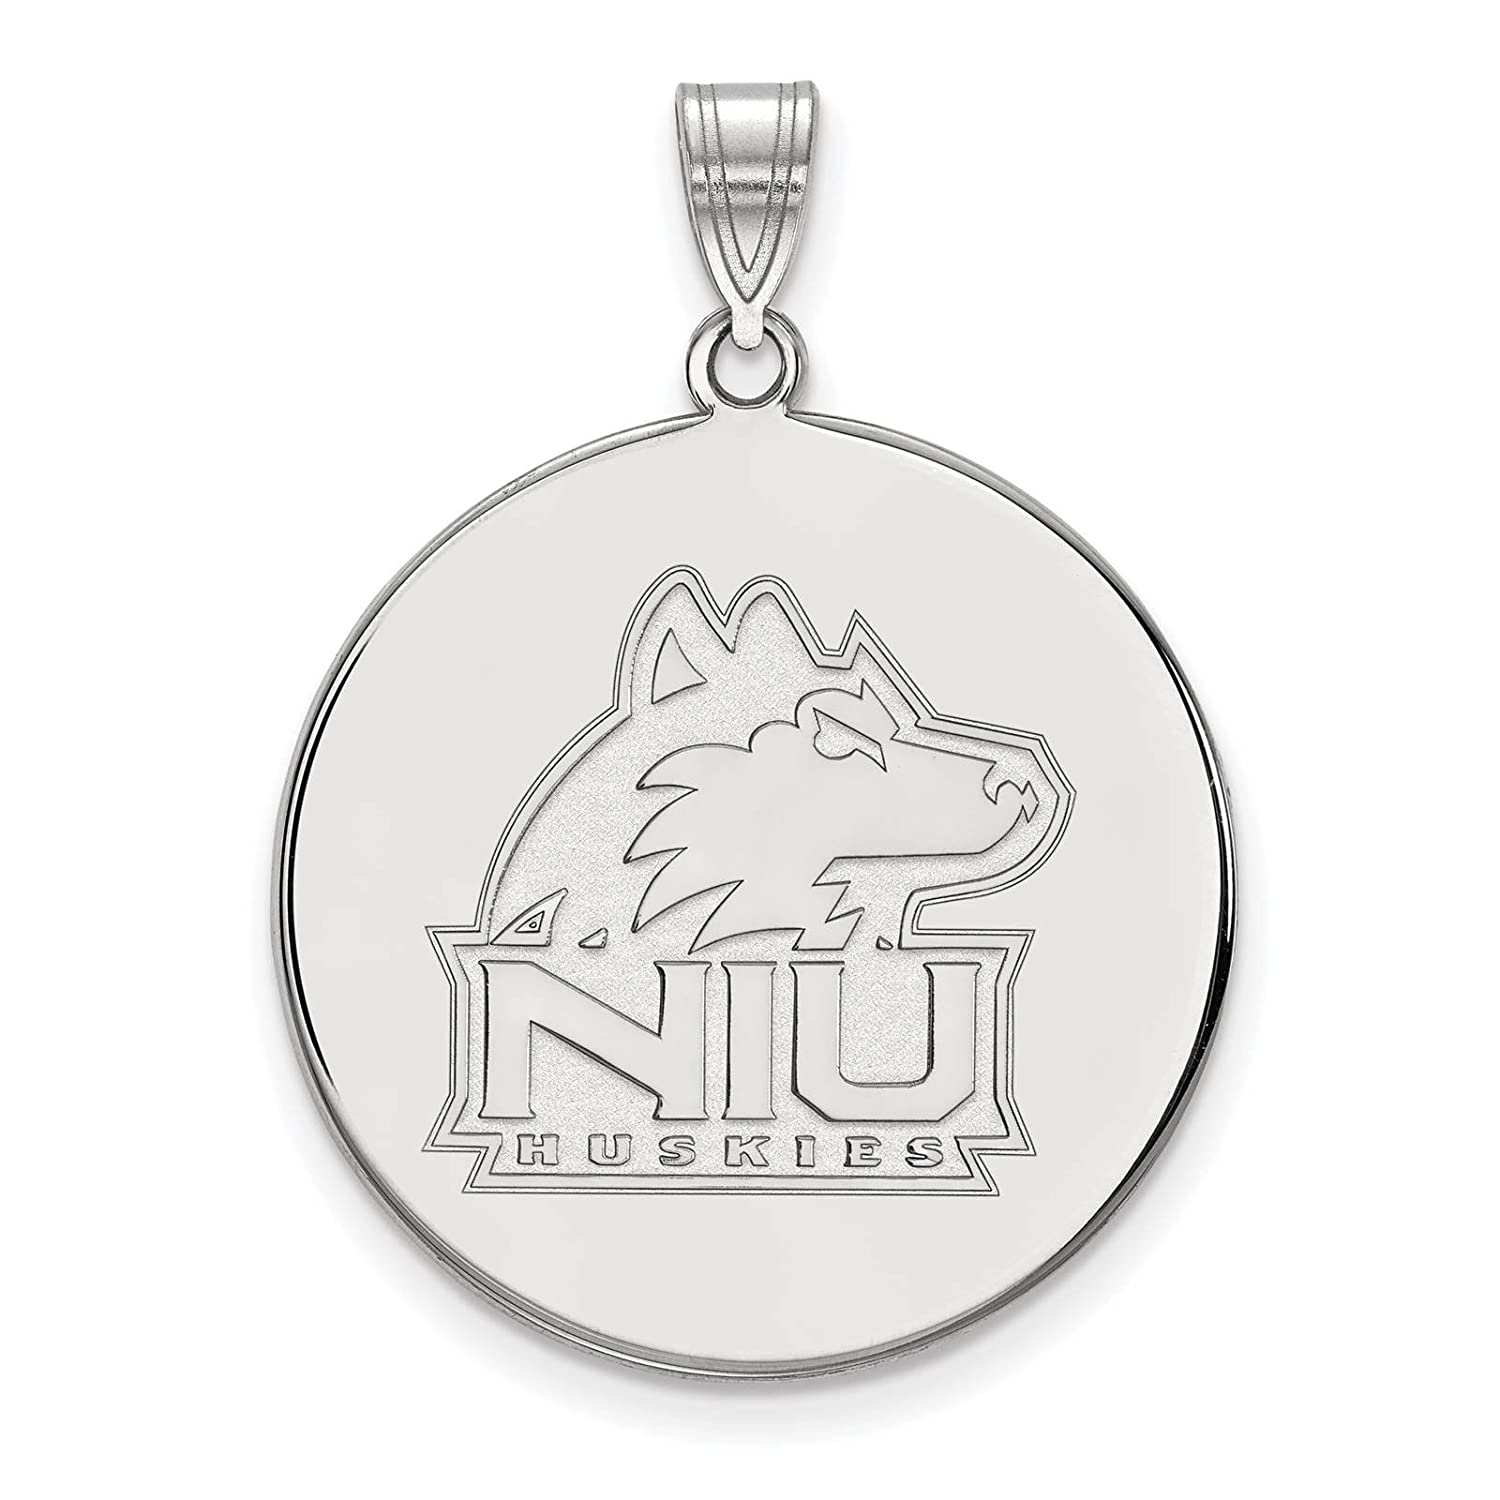 925 Sterling Silver Rhodium-plated Laser-cut Northern Illinois University XL Disc Pendant